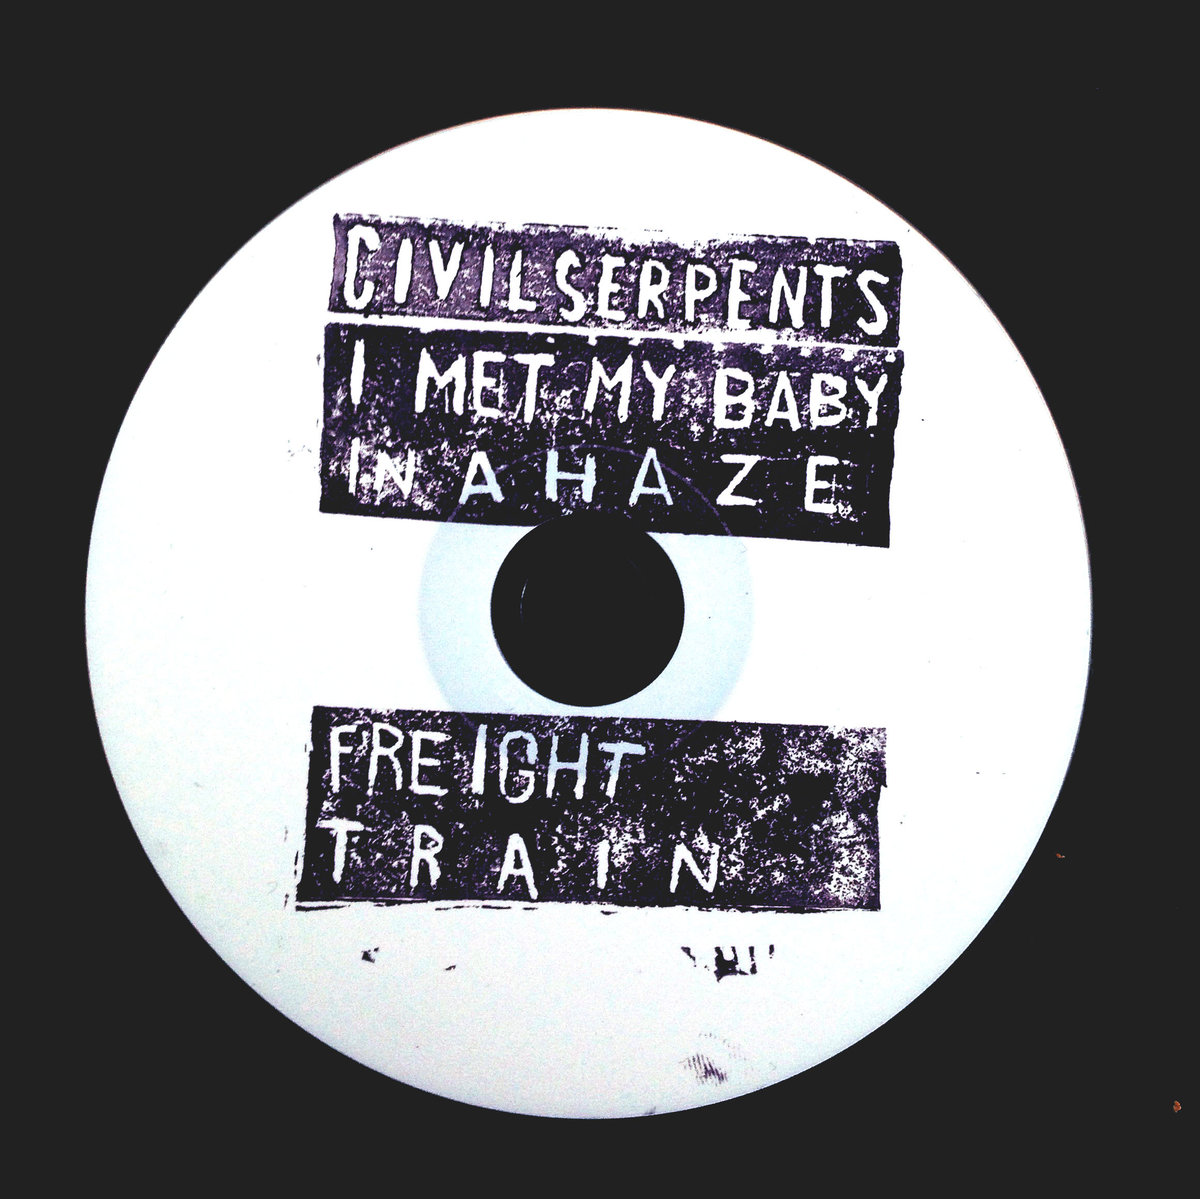 Civil Serpents - Met My Baby EP - Released March 2015